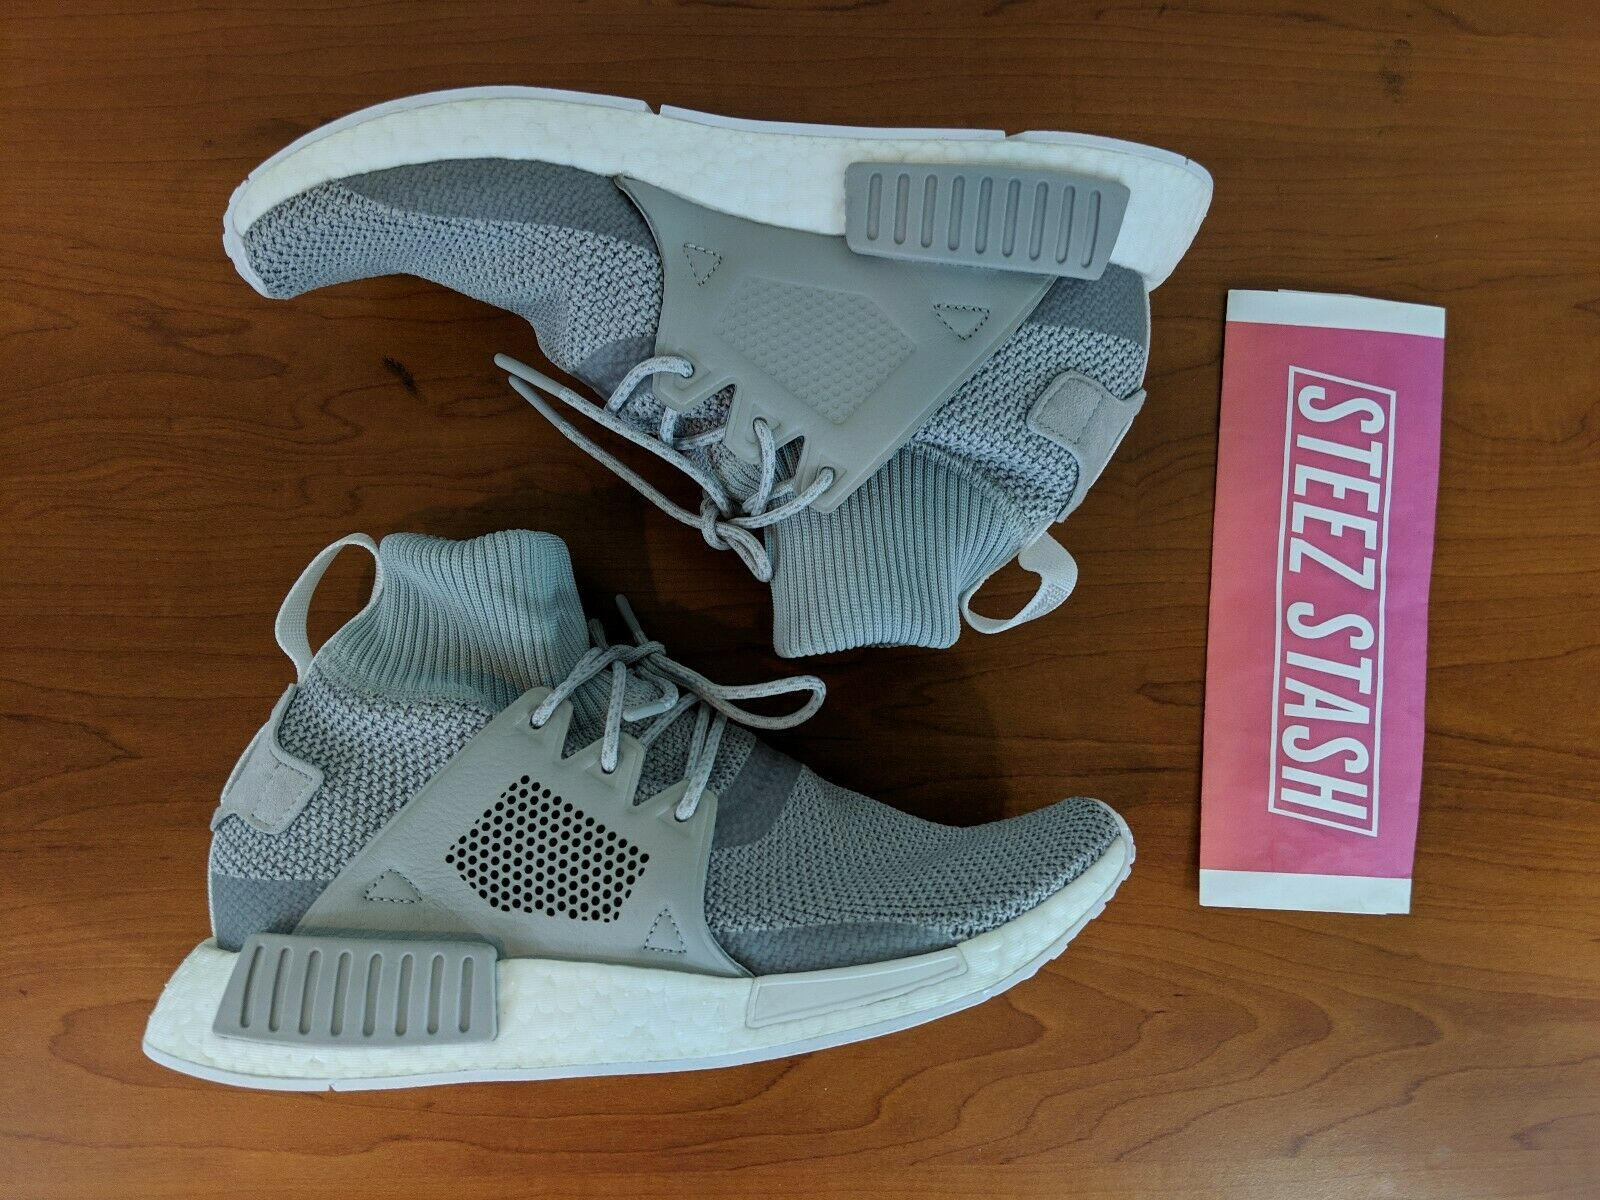 Adidas NMD XR1 Winter Mens Sneakers Boost Grey White BZ0633 Size 9